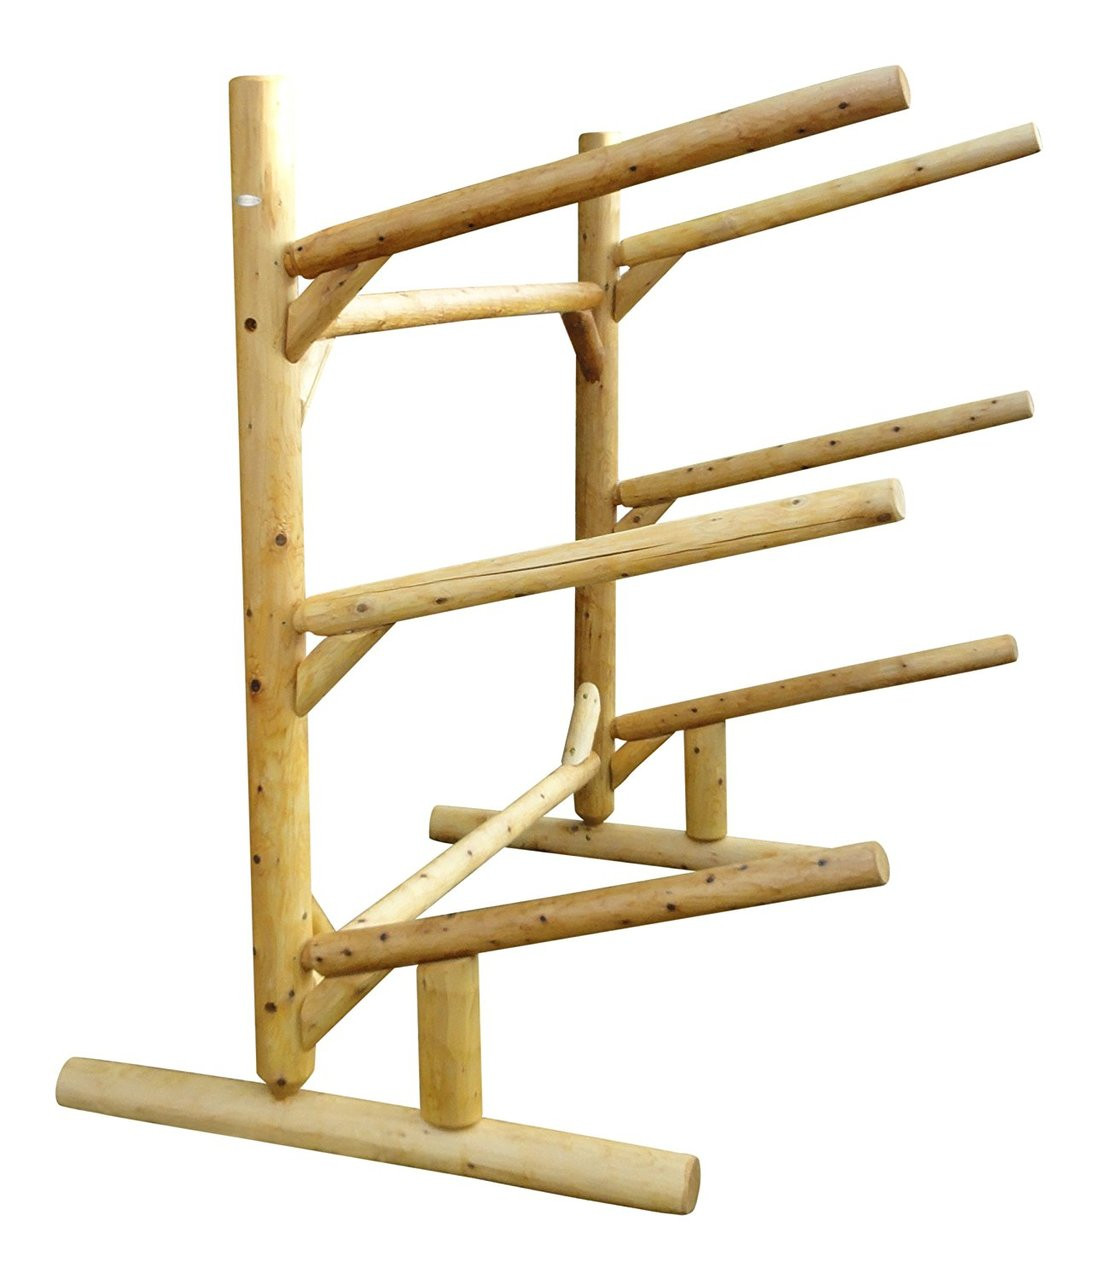 Kayak Sup And Canoe One Sided Log Rack Fits 2 Or 3